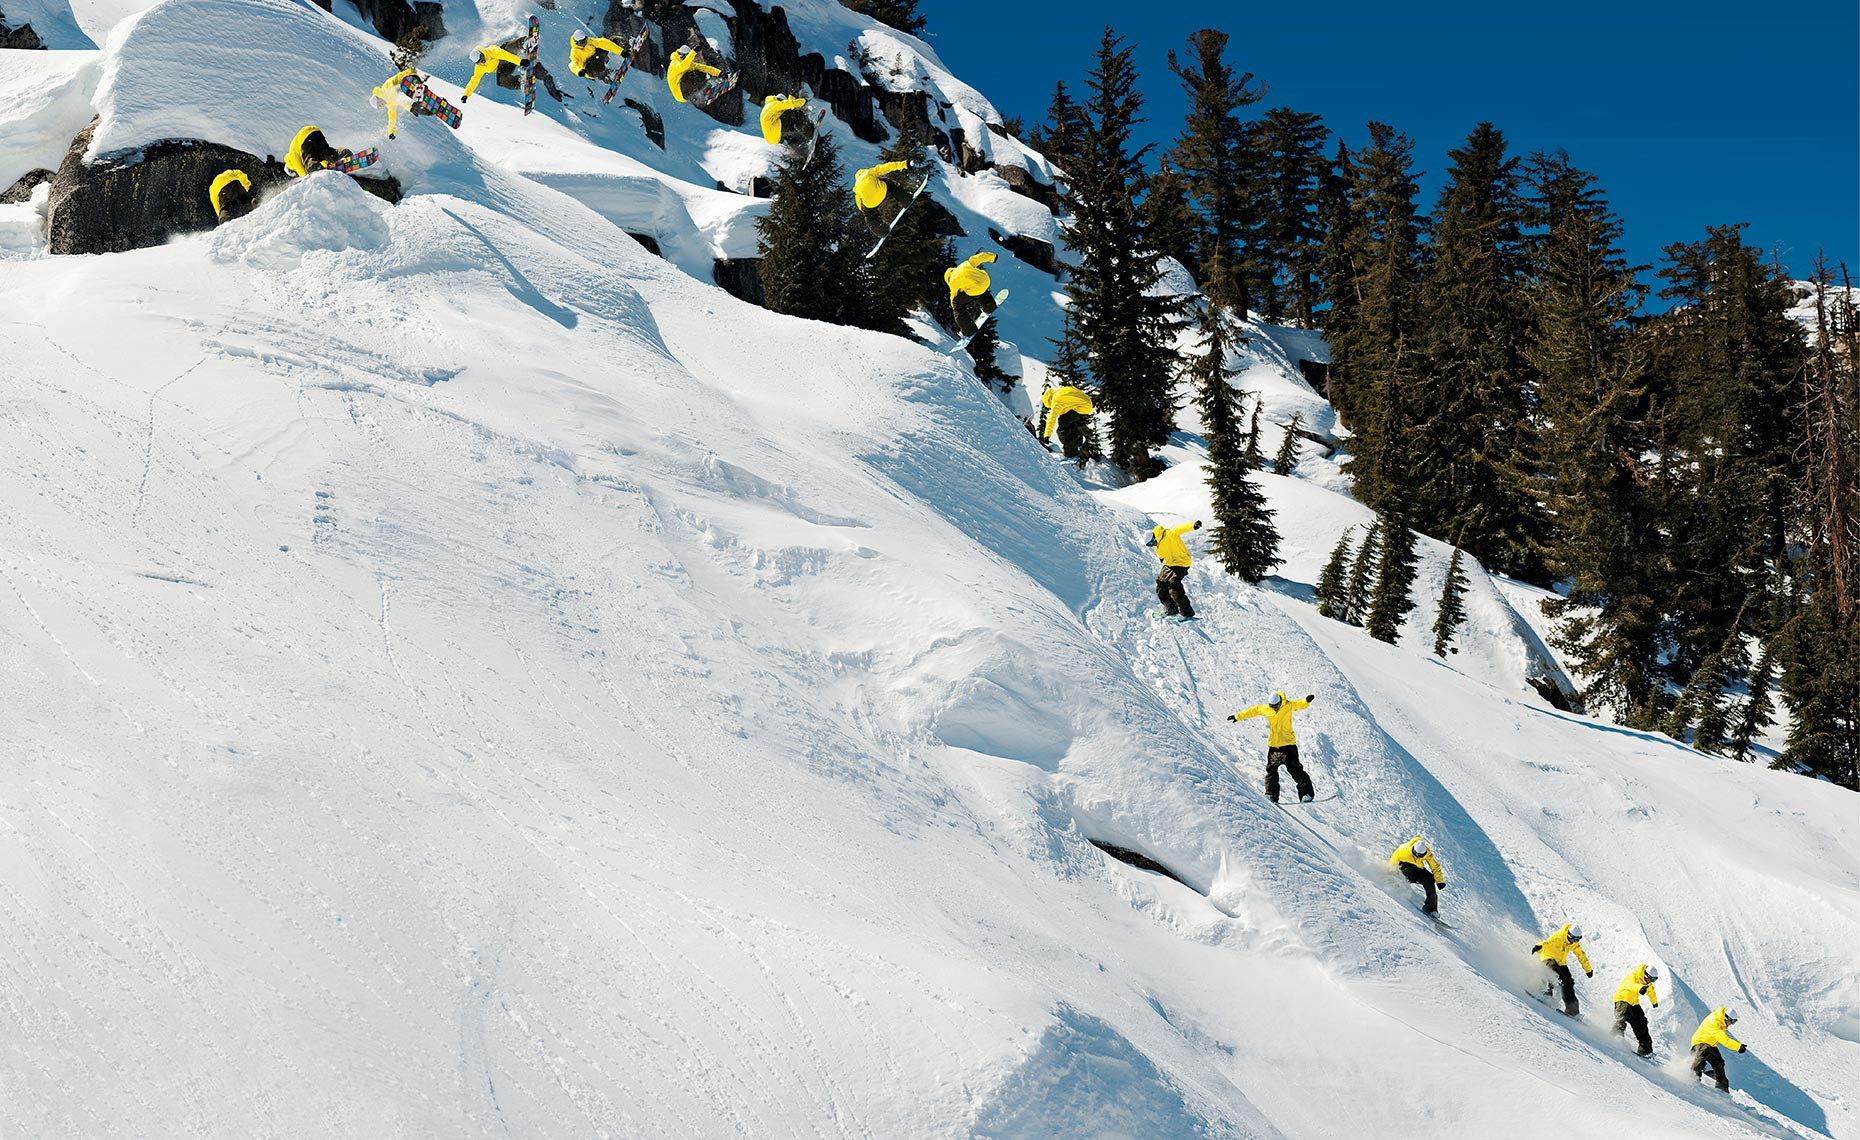 15_Devun_Walsh_backcountry_Sierra_at_Tahoe_California_20_Tricks_Snowboarding_Chris_Wellhausen_Photography.JPG